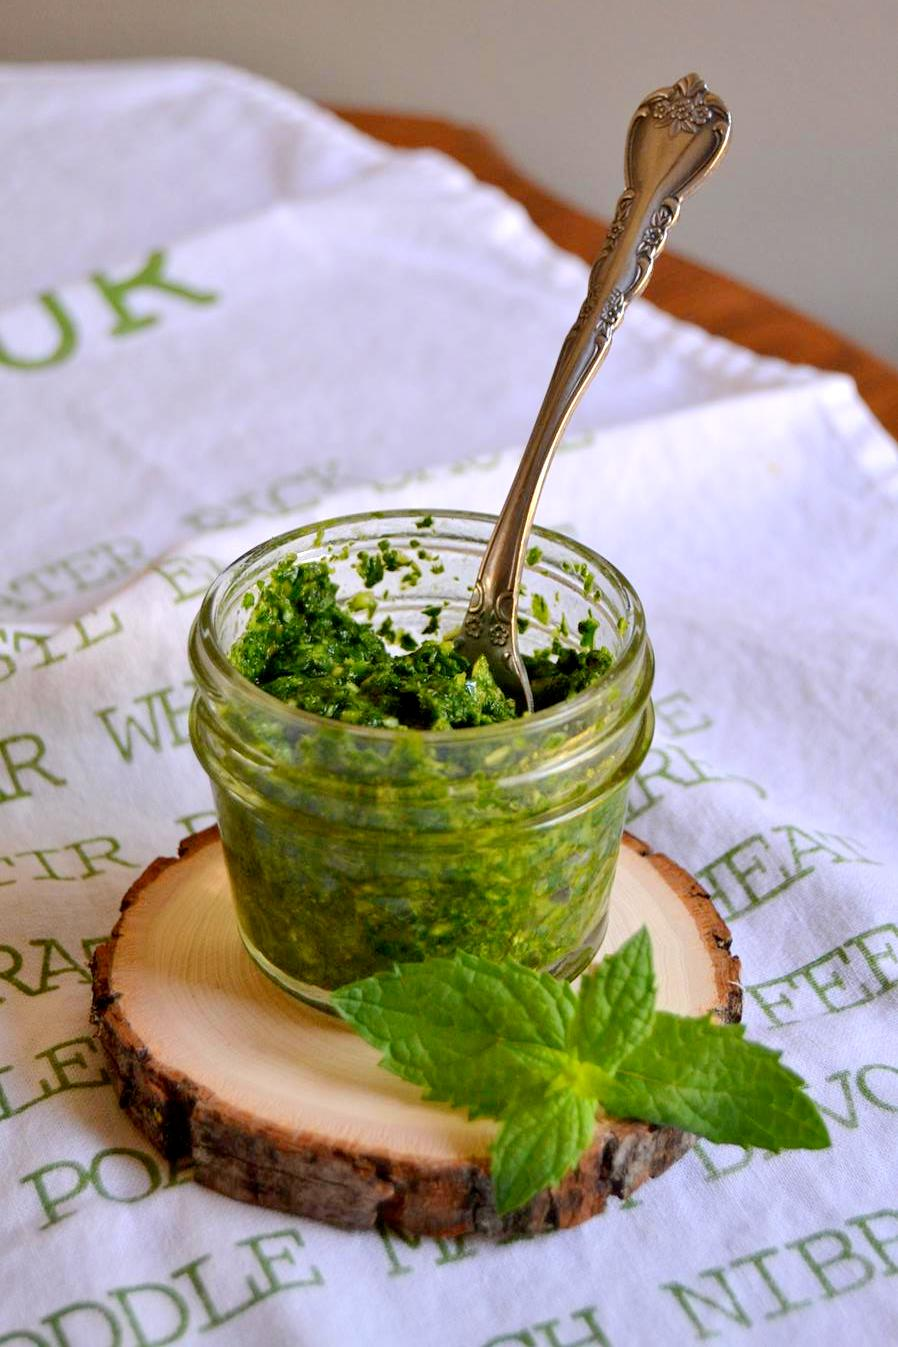 Garden Fresh Mint Pesto